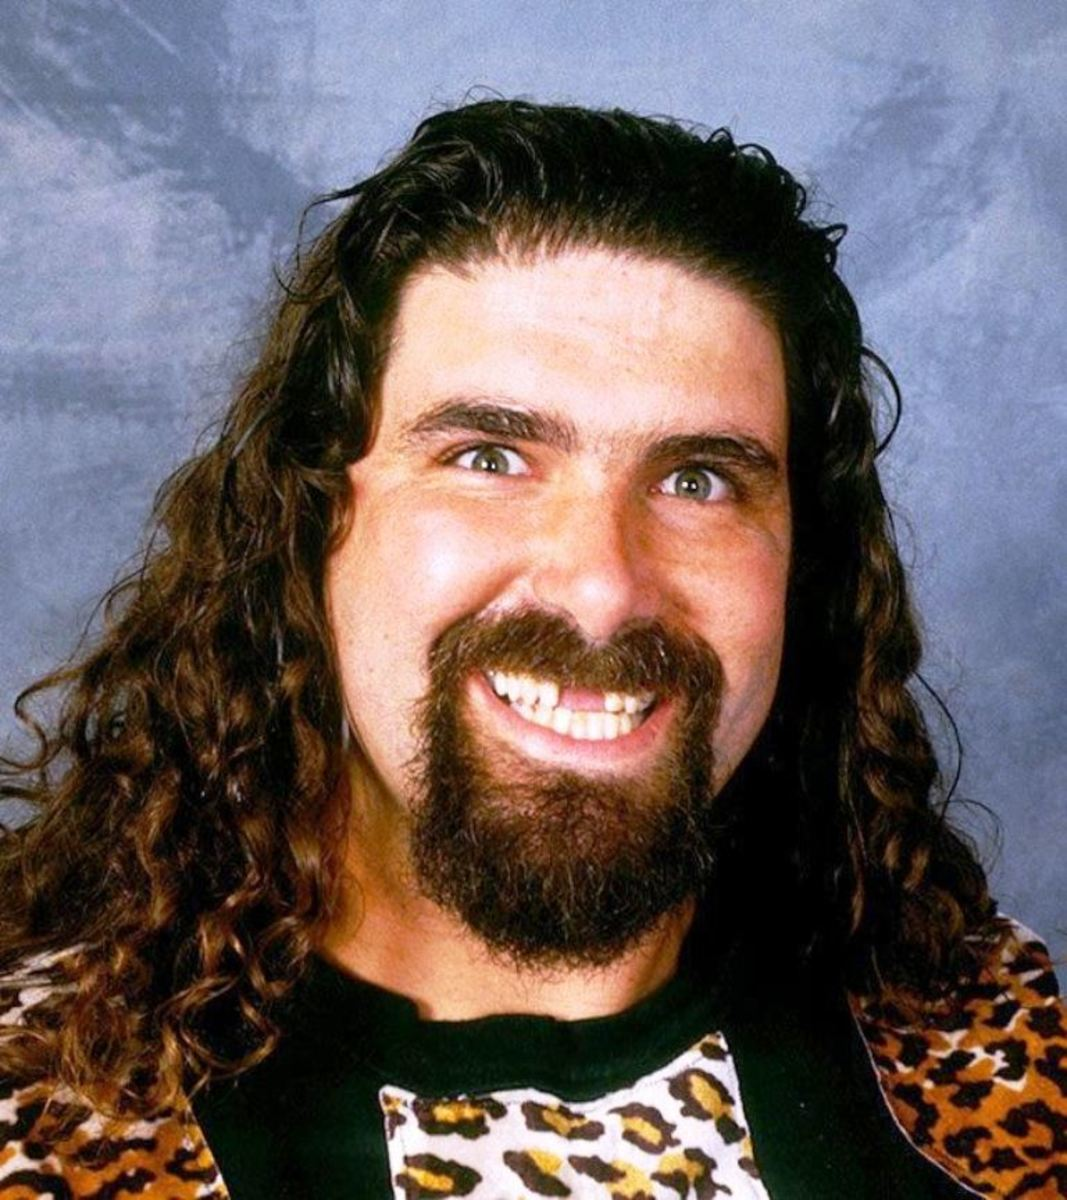 Mick Foley displaying his broken teeth with a smile.